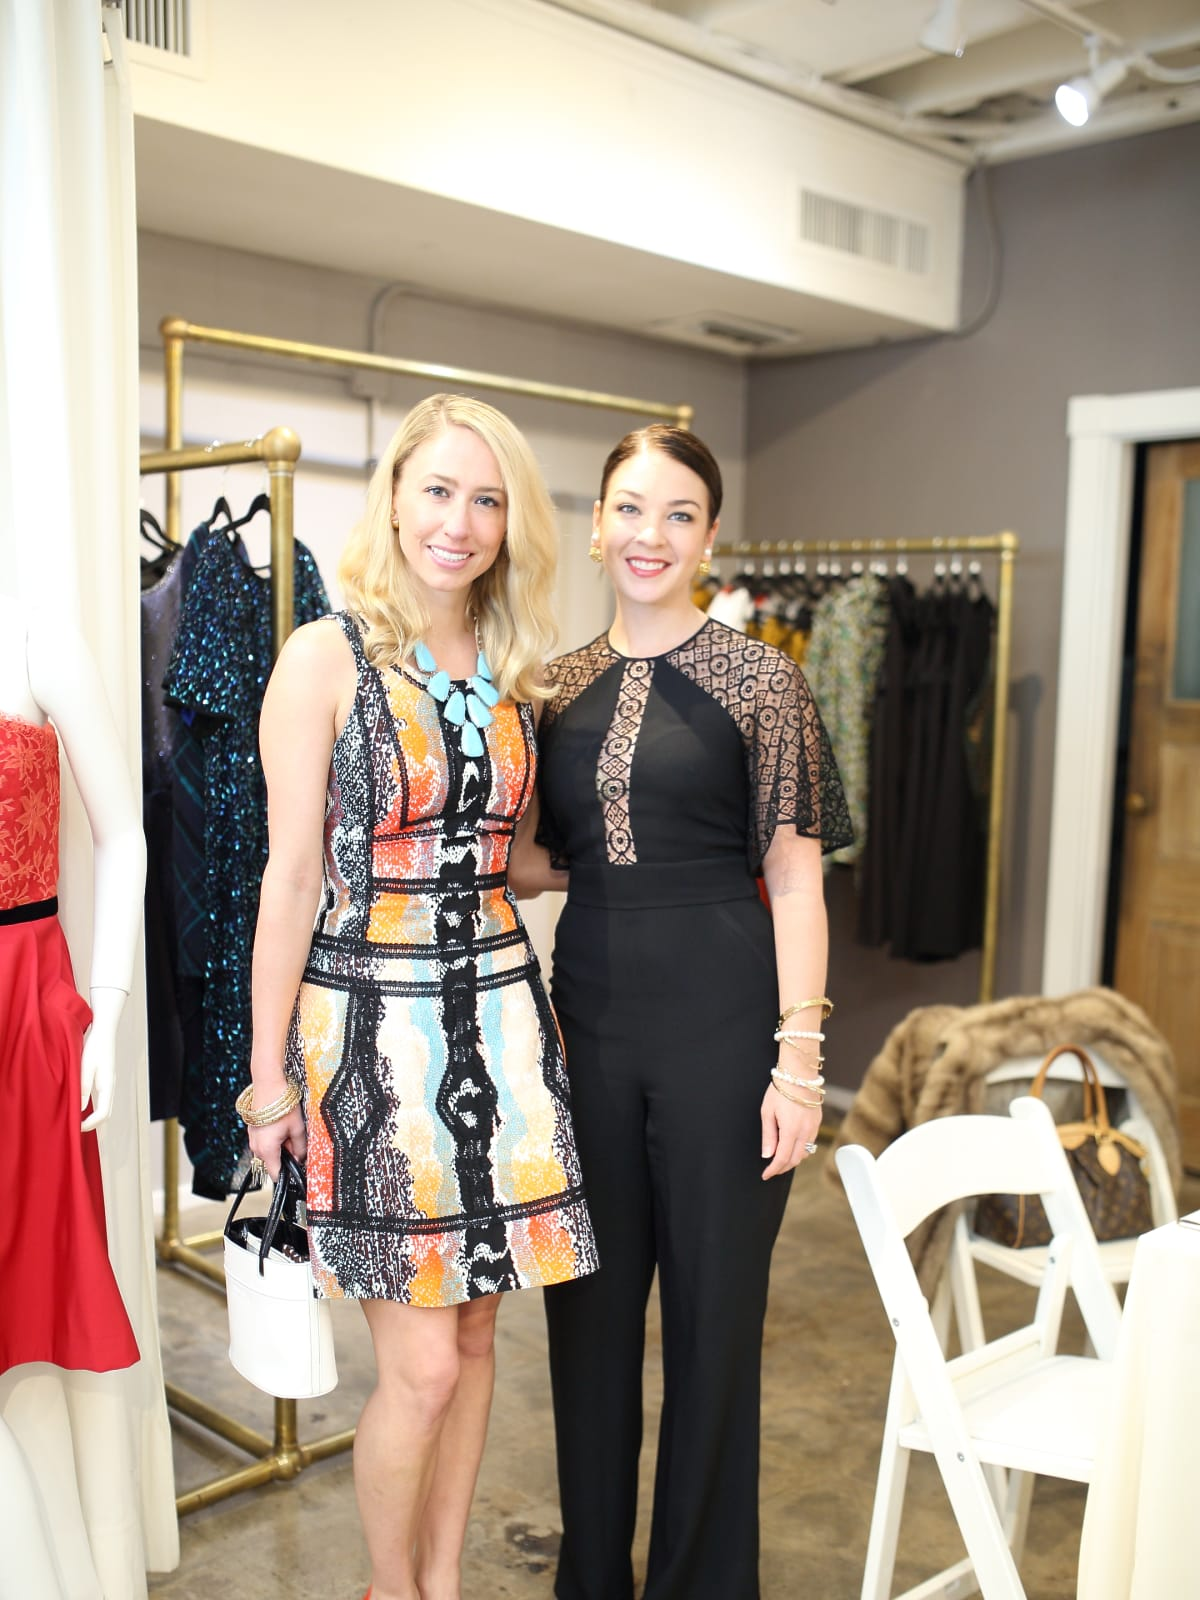 Ashley Seippel and Jacquel Andrews at Miles David fashion show